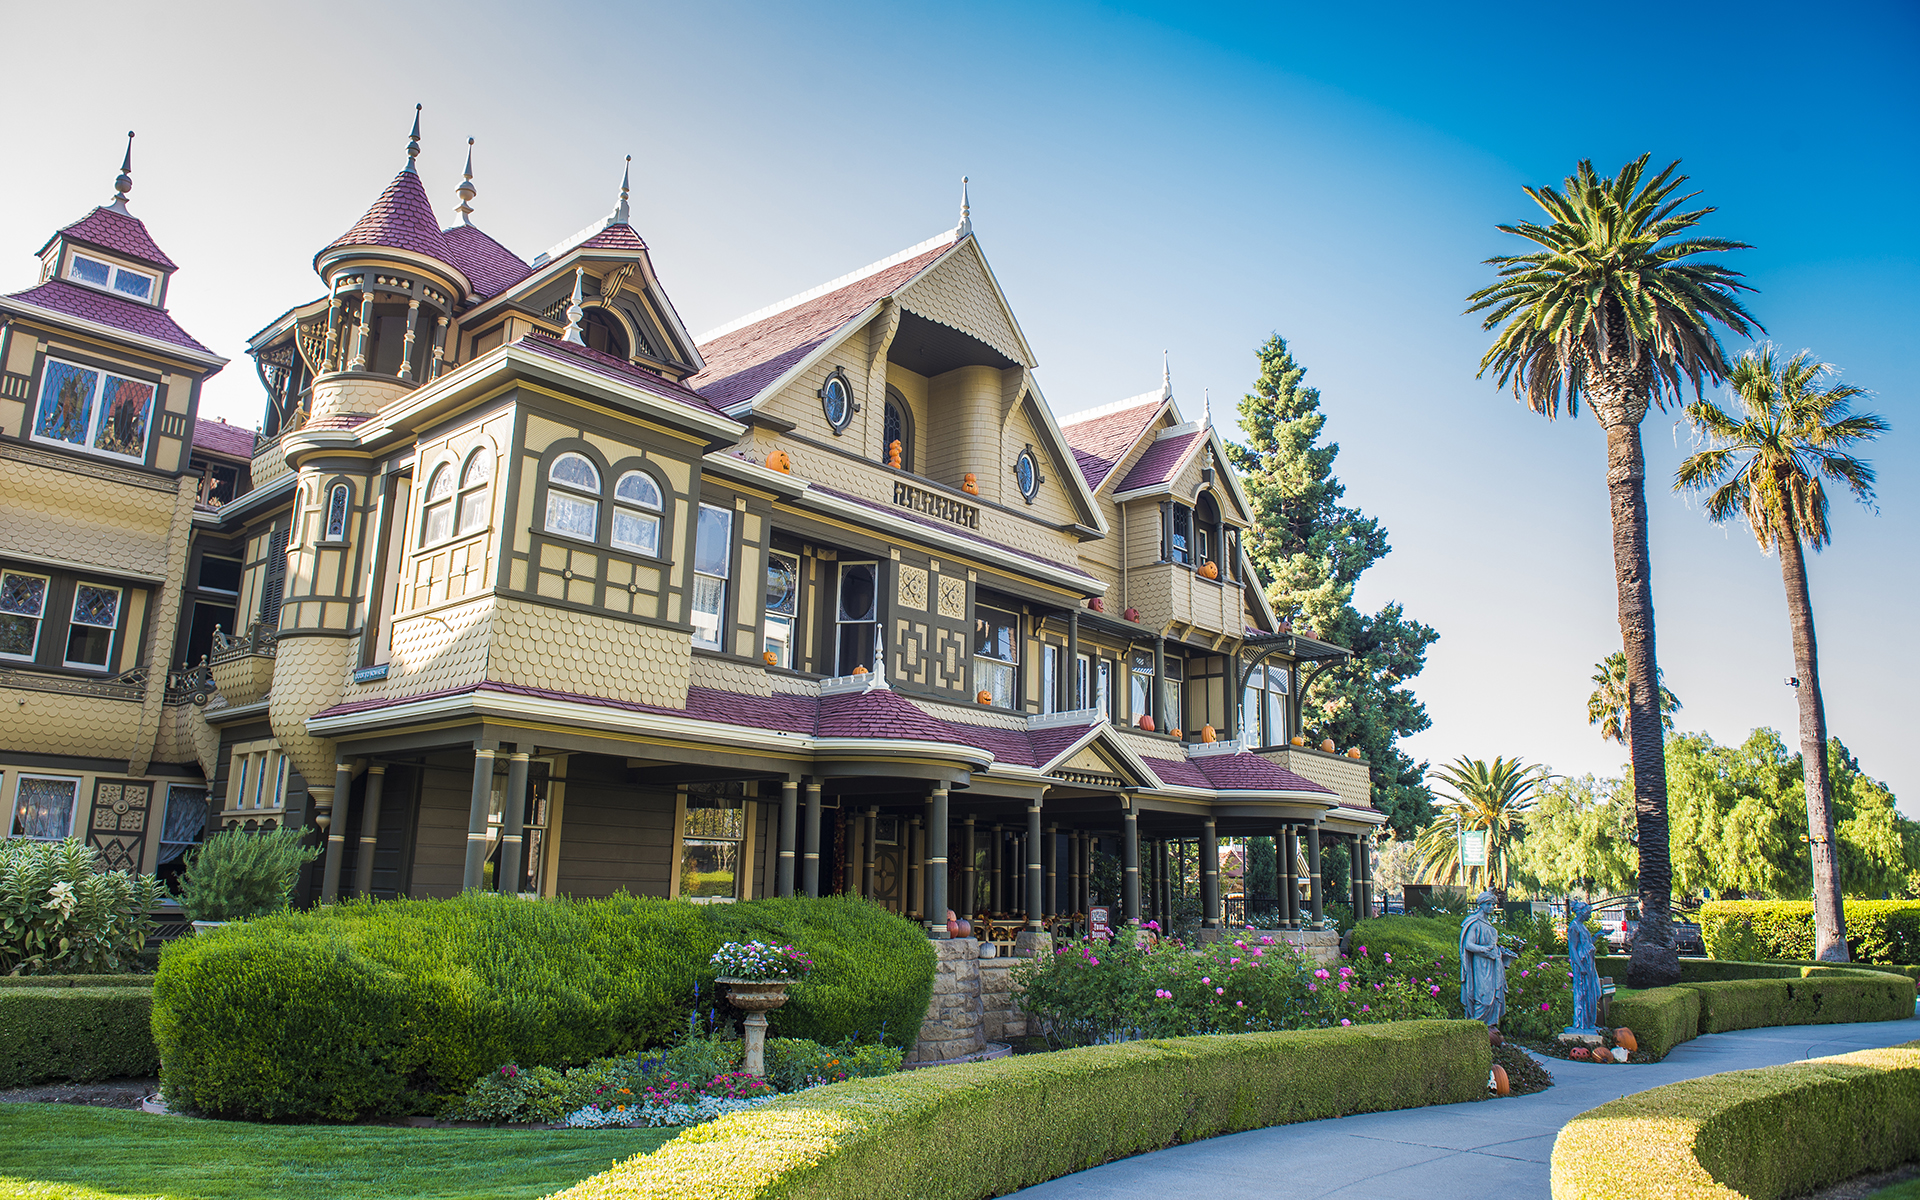 Visit the Winchester Mystery House in San Jose